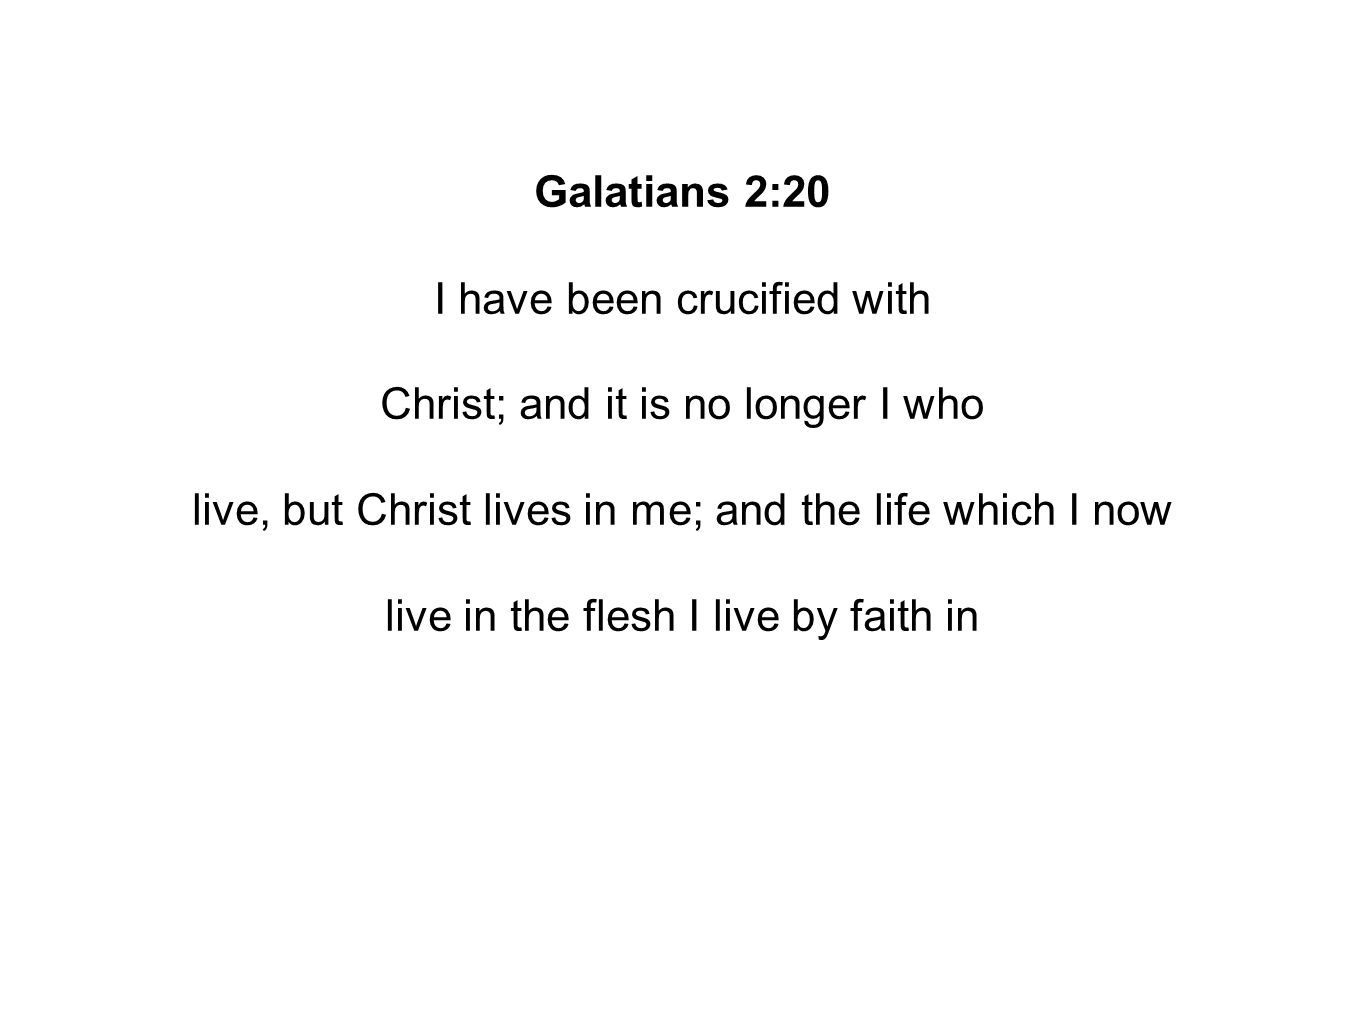 Galatians 2:20 I have been crucified with Christ; and it is no longer I who live, but Christ lives in me; and the life which I now live in the flesh I live by faith in